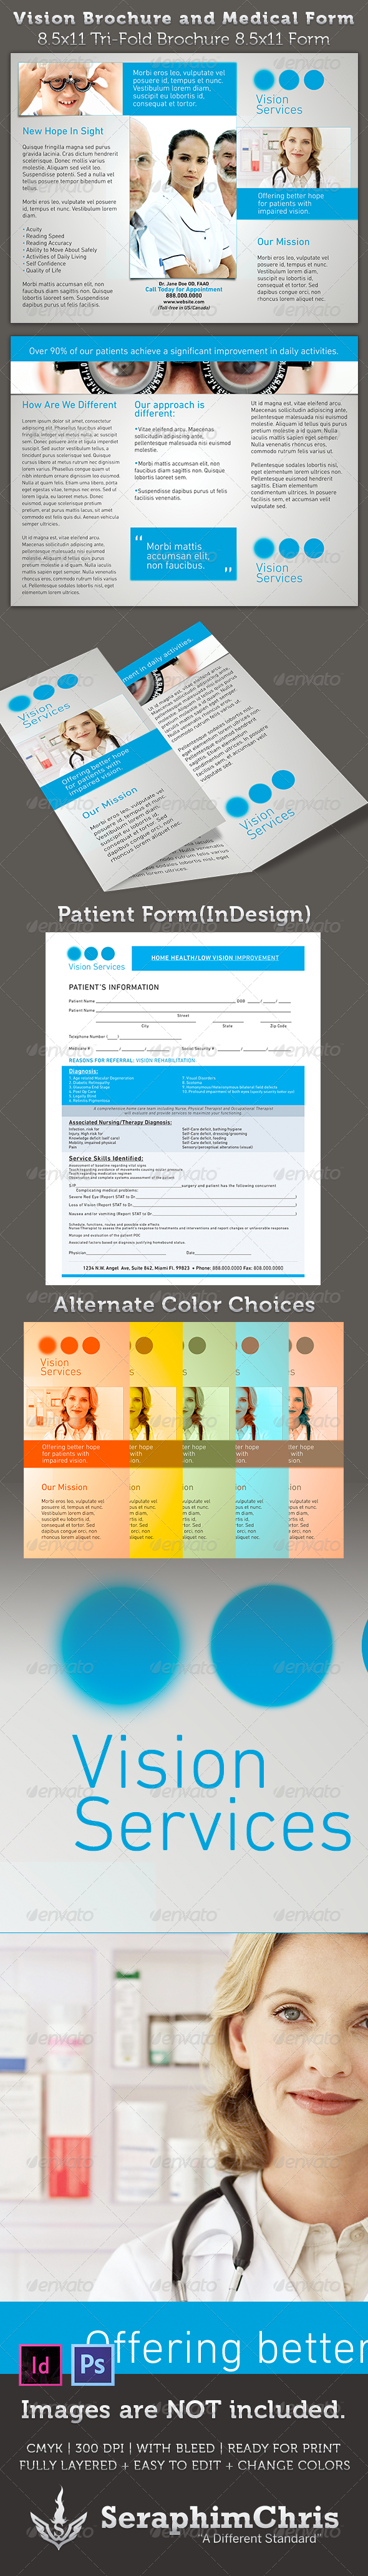 GraphicRiver Vision Brochure and Medical Form Template 3502746